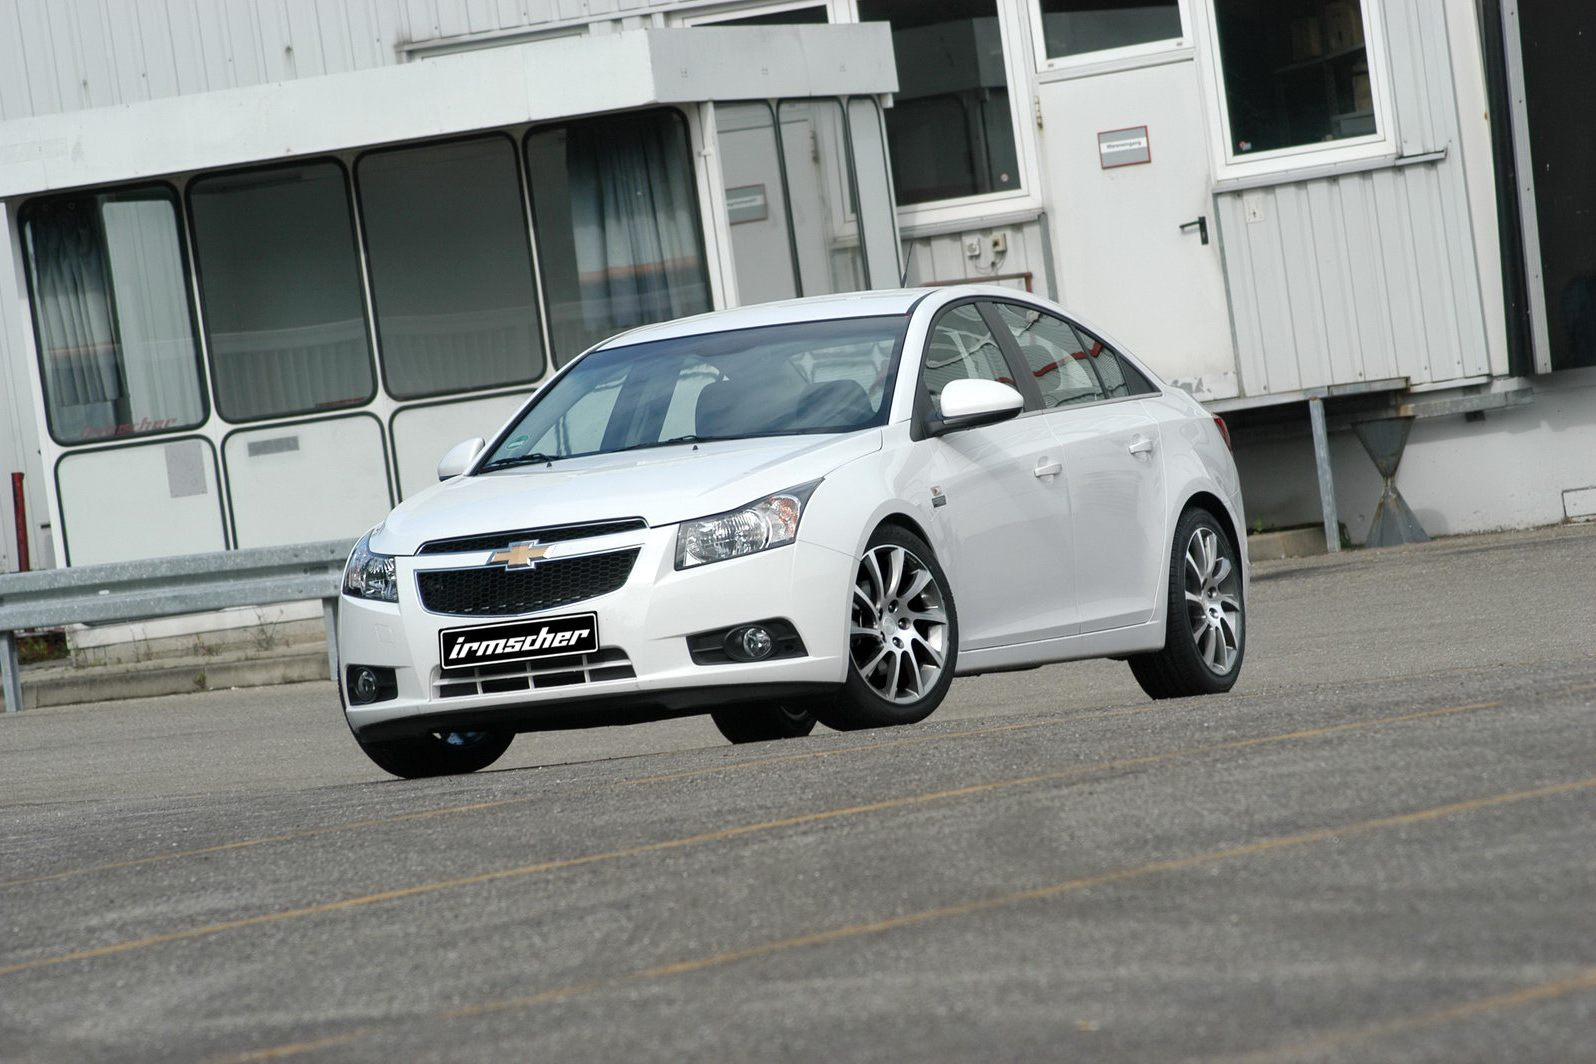 Chevy Cruze Irmscher